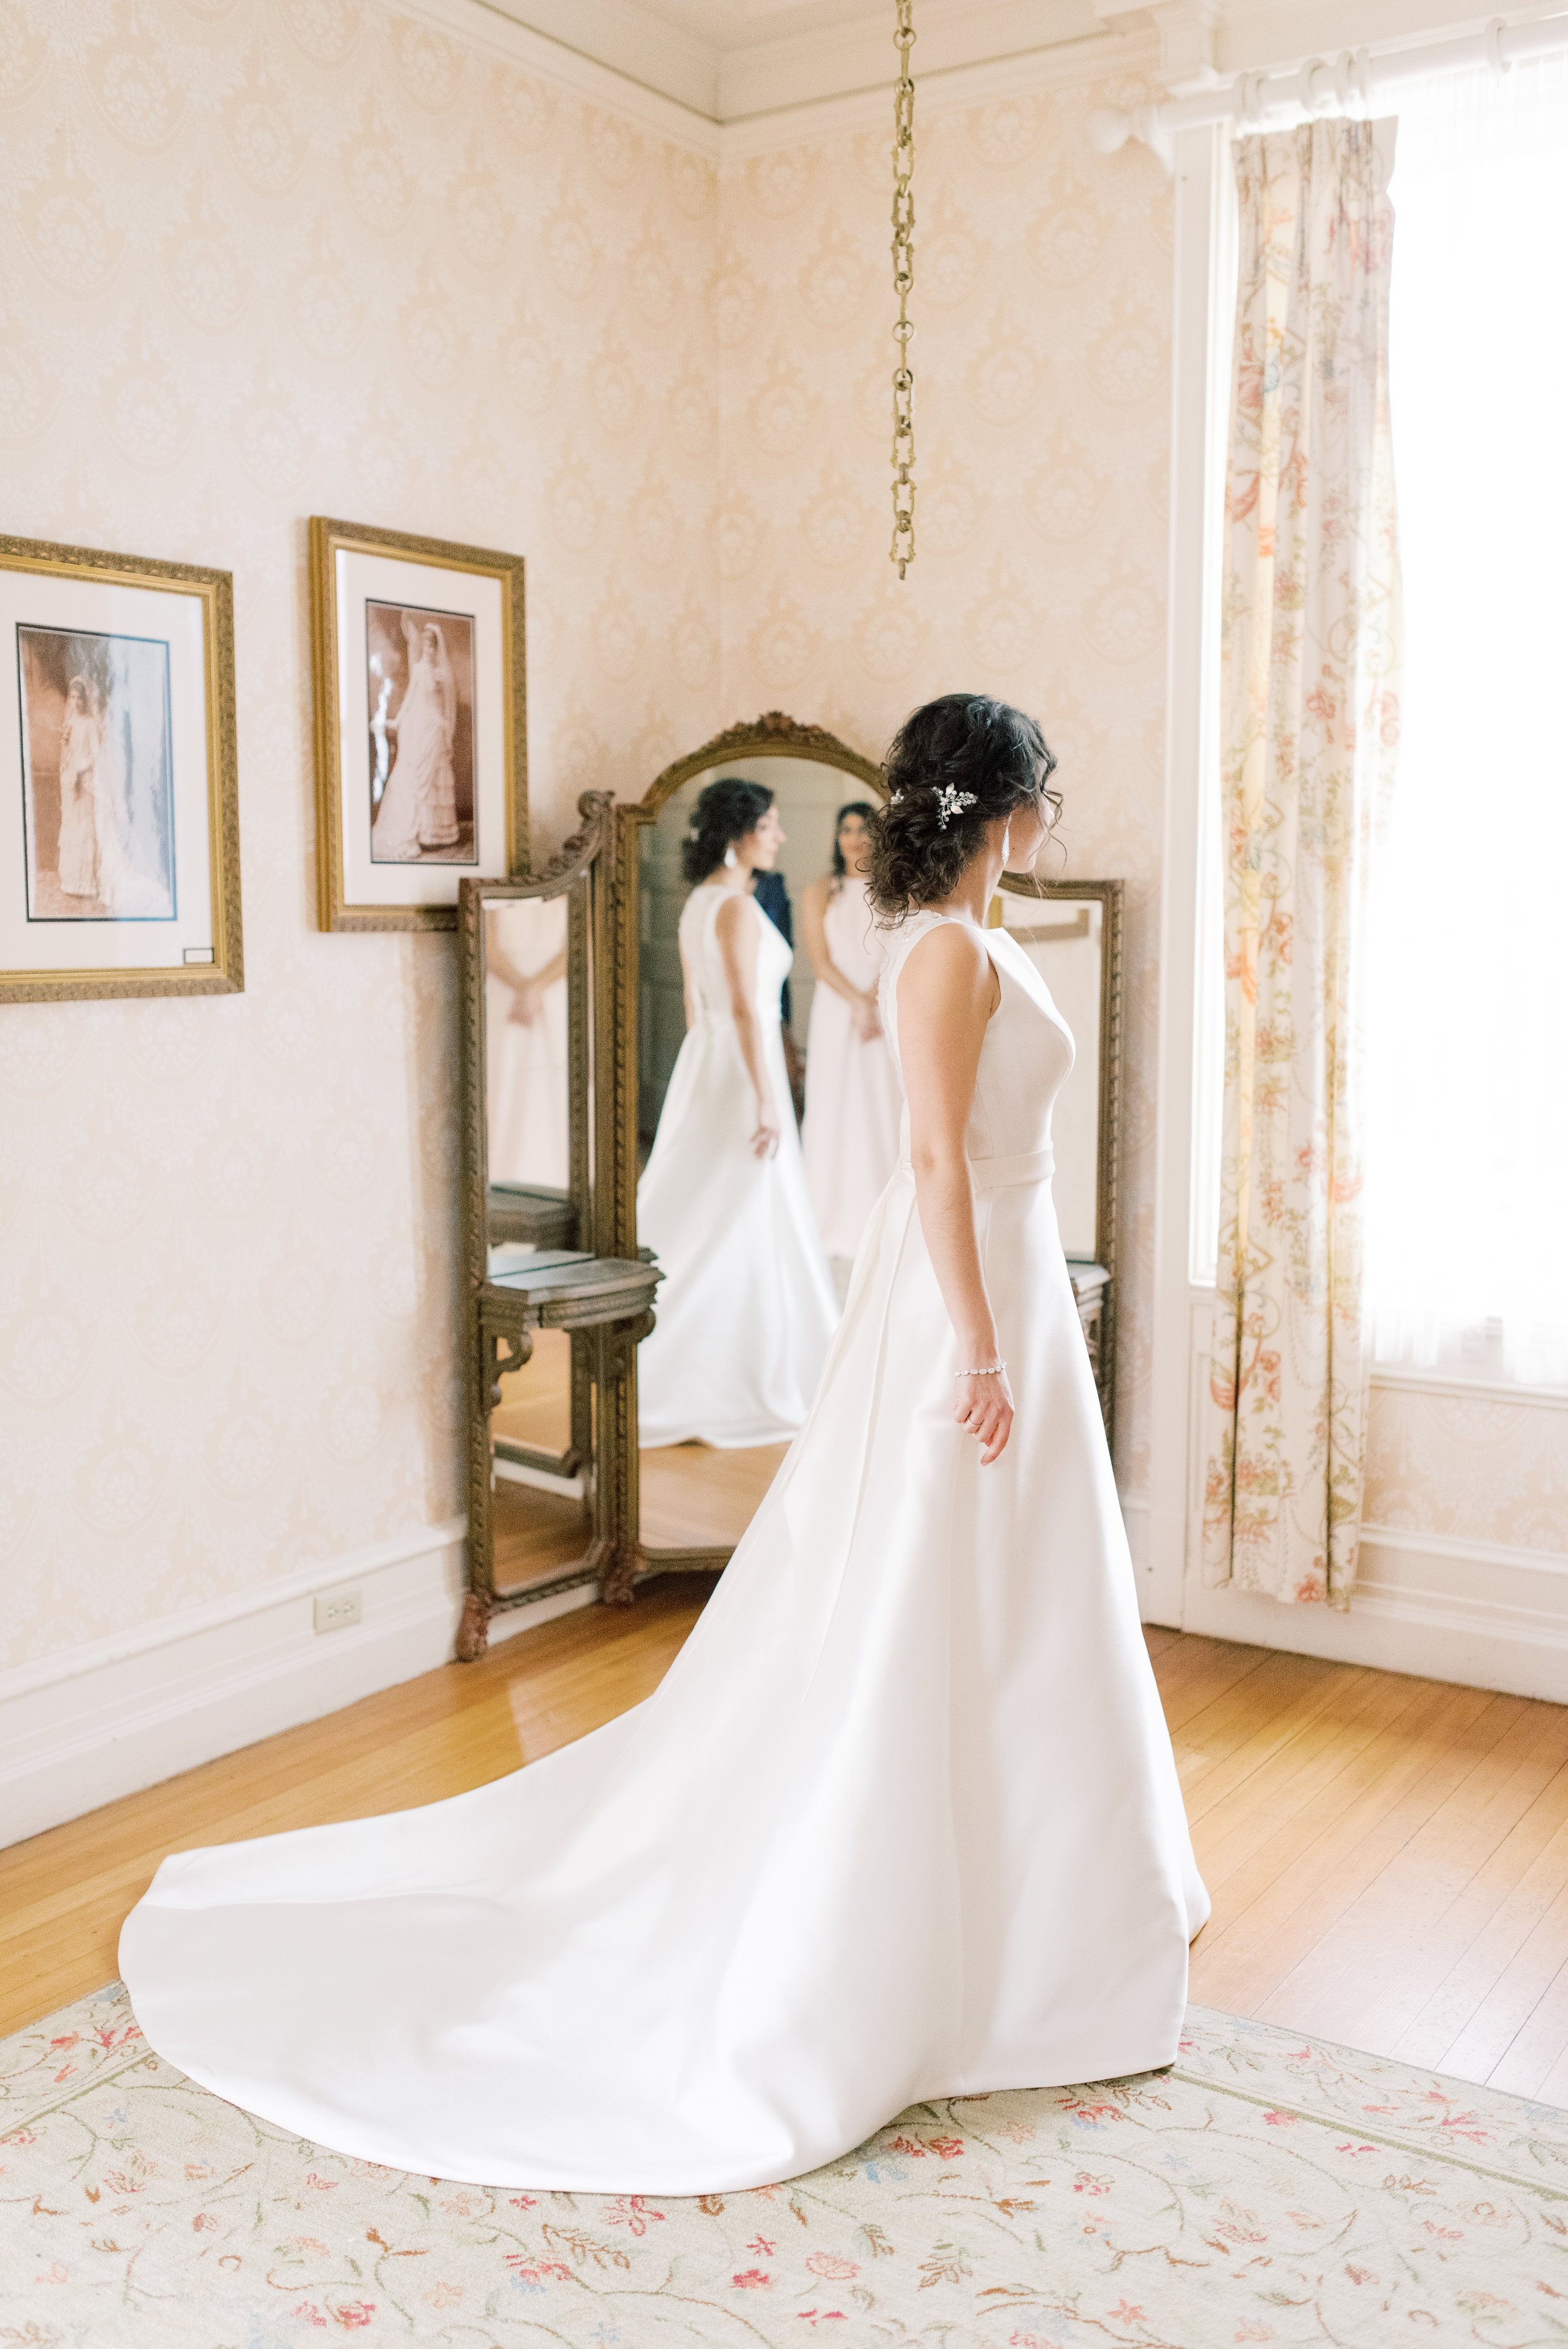 Carinwood Estate has the most elegant bridal suite for their brides to get ready in, we loved how Angjela looked here with her modern a-line wedding dress for her romantic and classic wedding day for their french inspired green and white Cairnwood Estate wedding